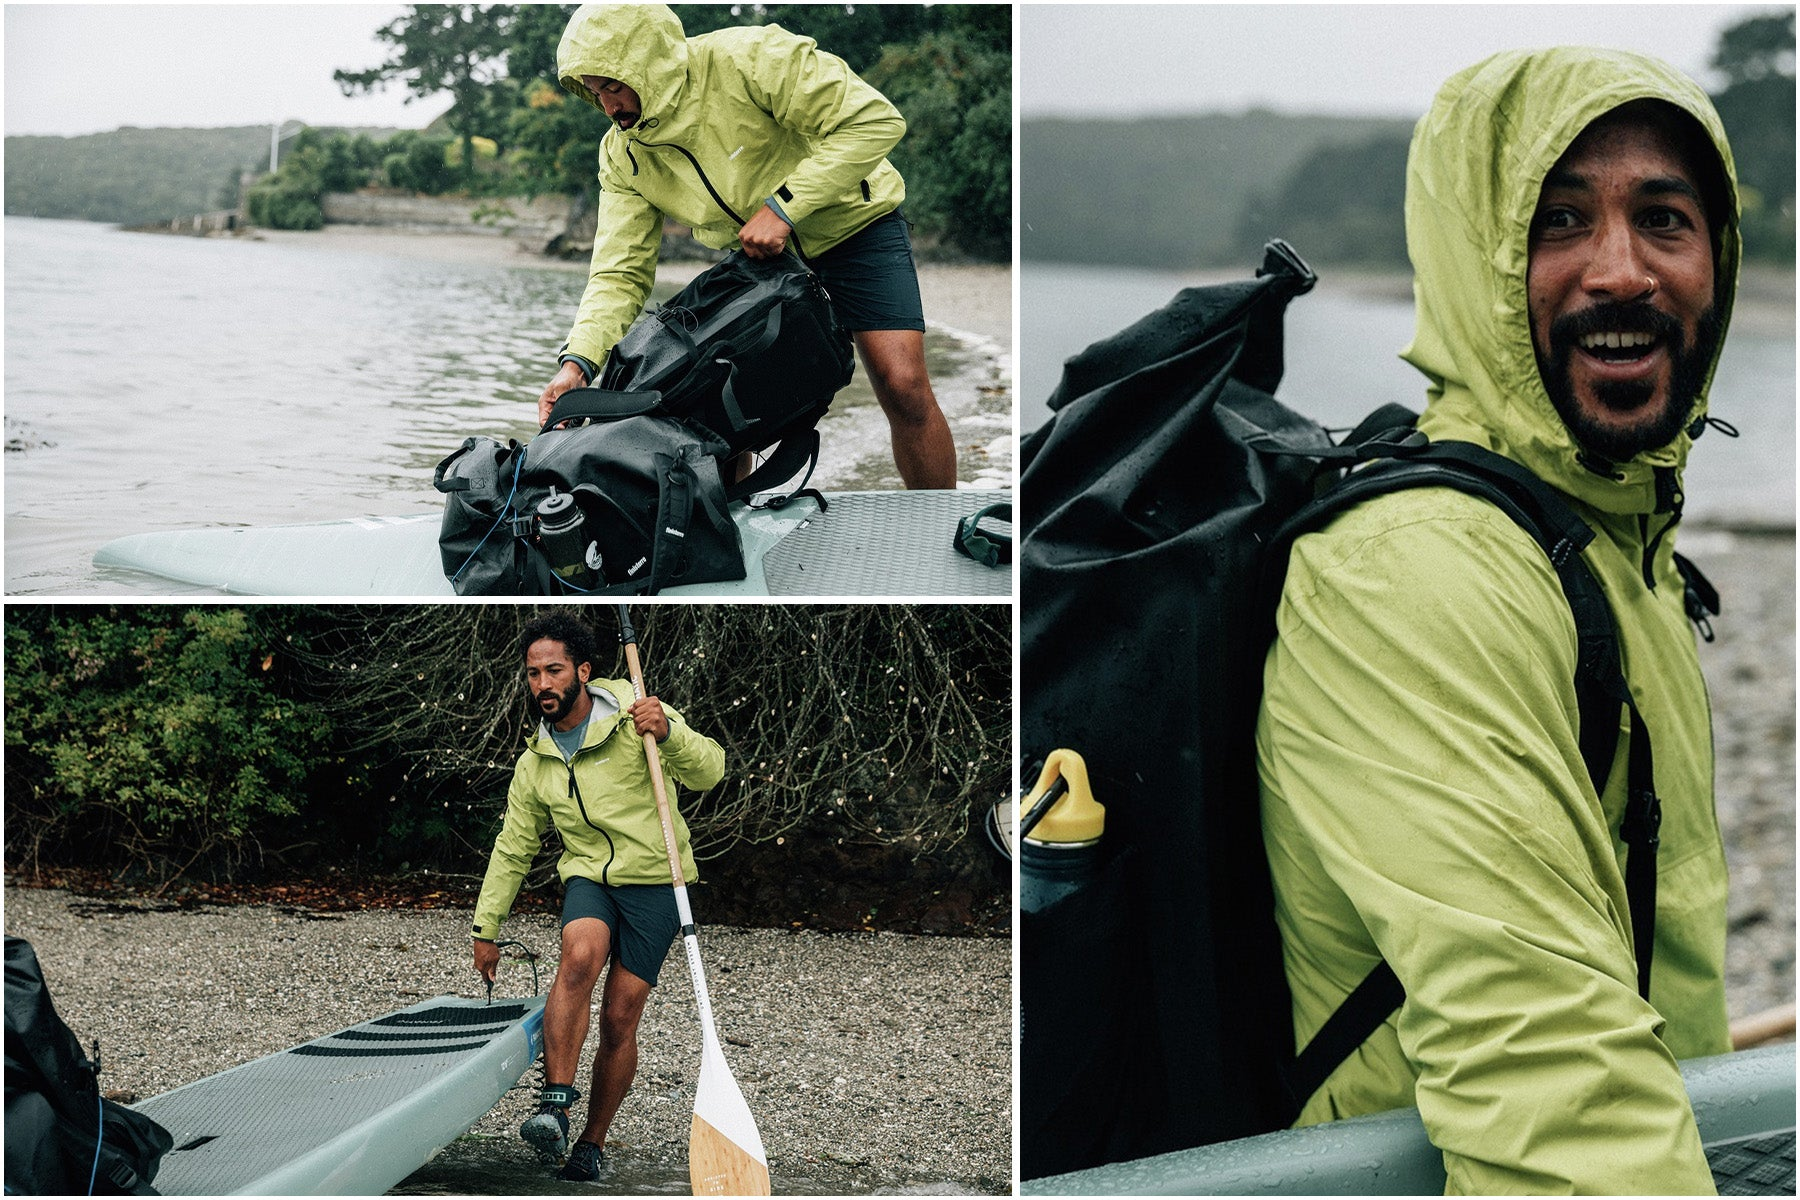 Sean White wearing the Rainbird jacket sets out on his solo paddleboard adventure